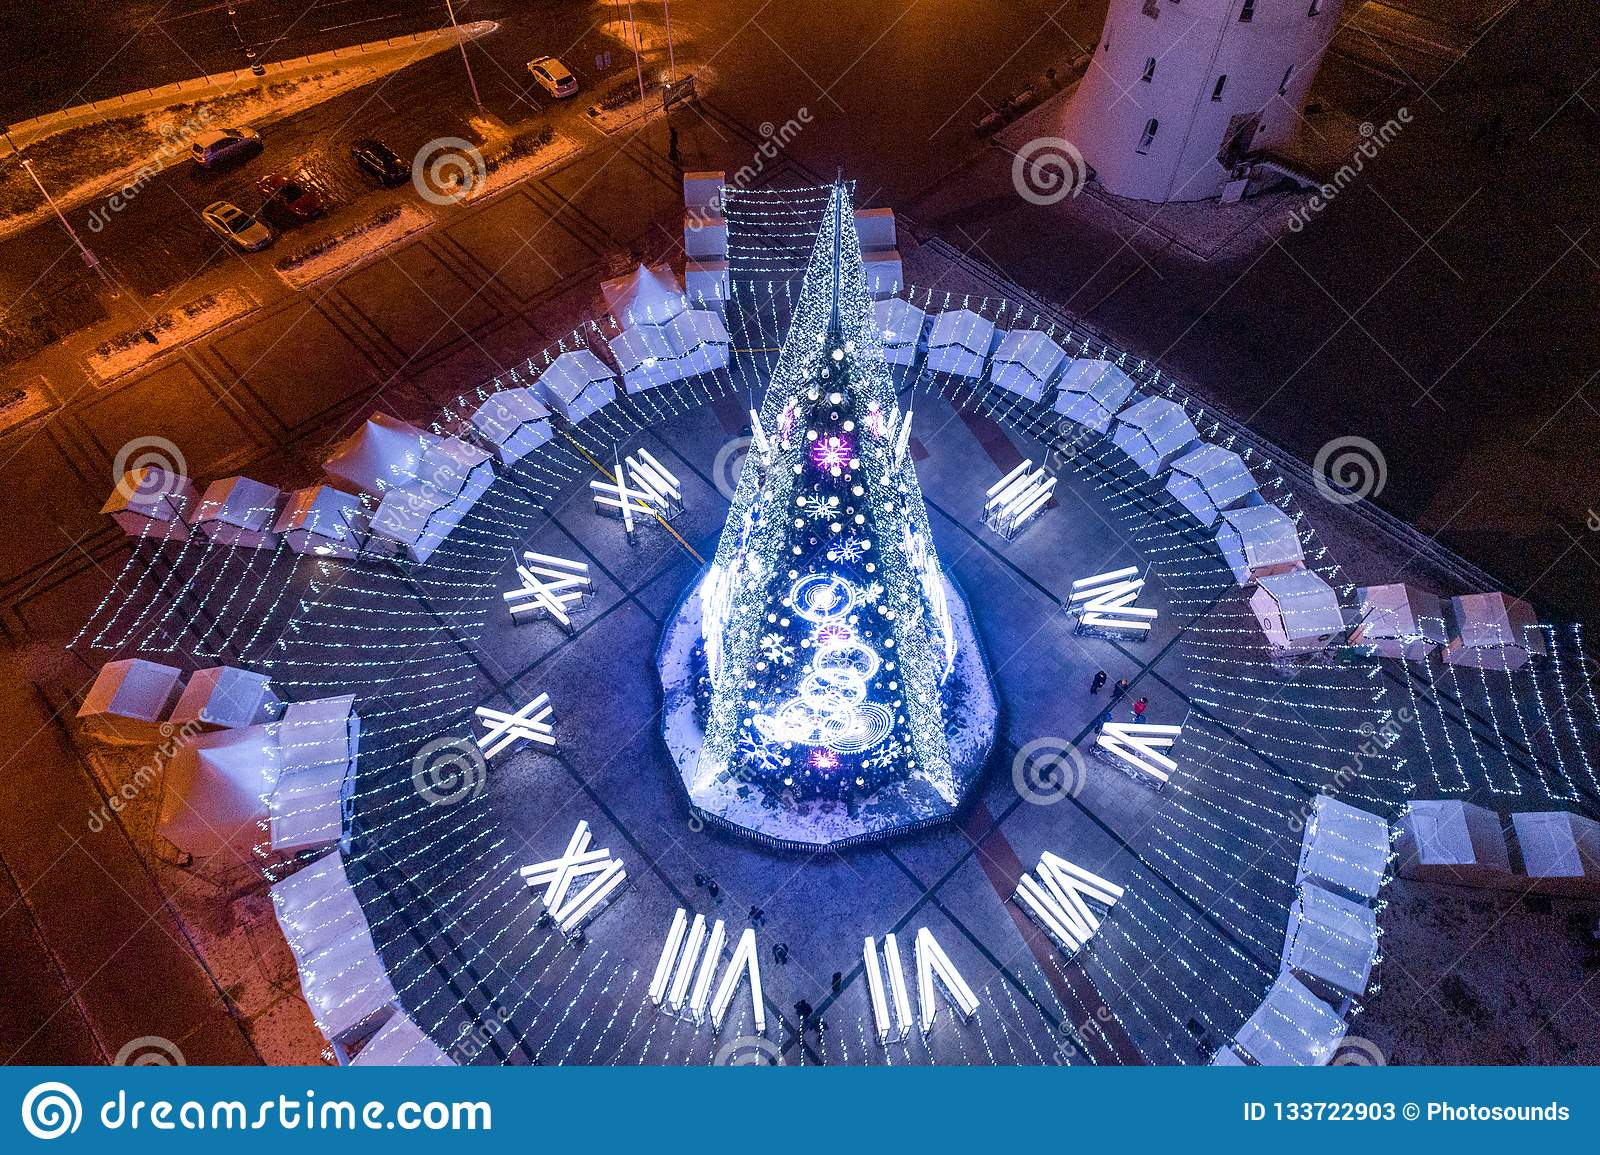 Christmas Tree In Vilnius Lithuania One Of The Best And Beautiful Christmas City In Europe Editorial Stock Photo Image Of Long Exposure 133722903